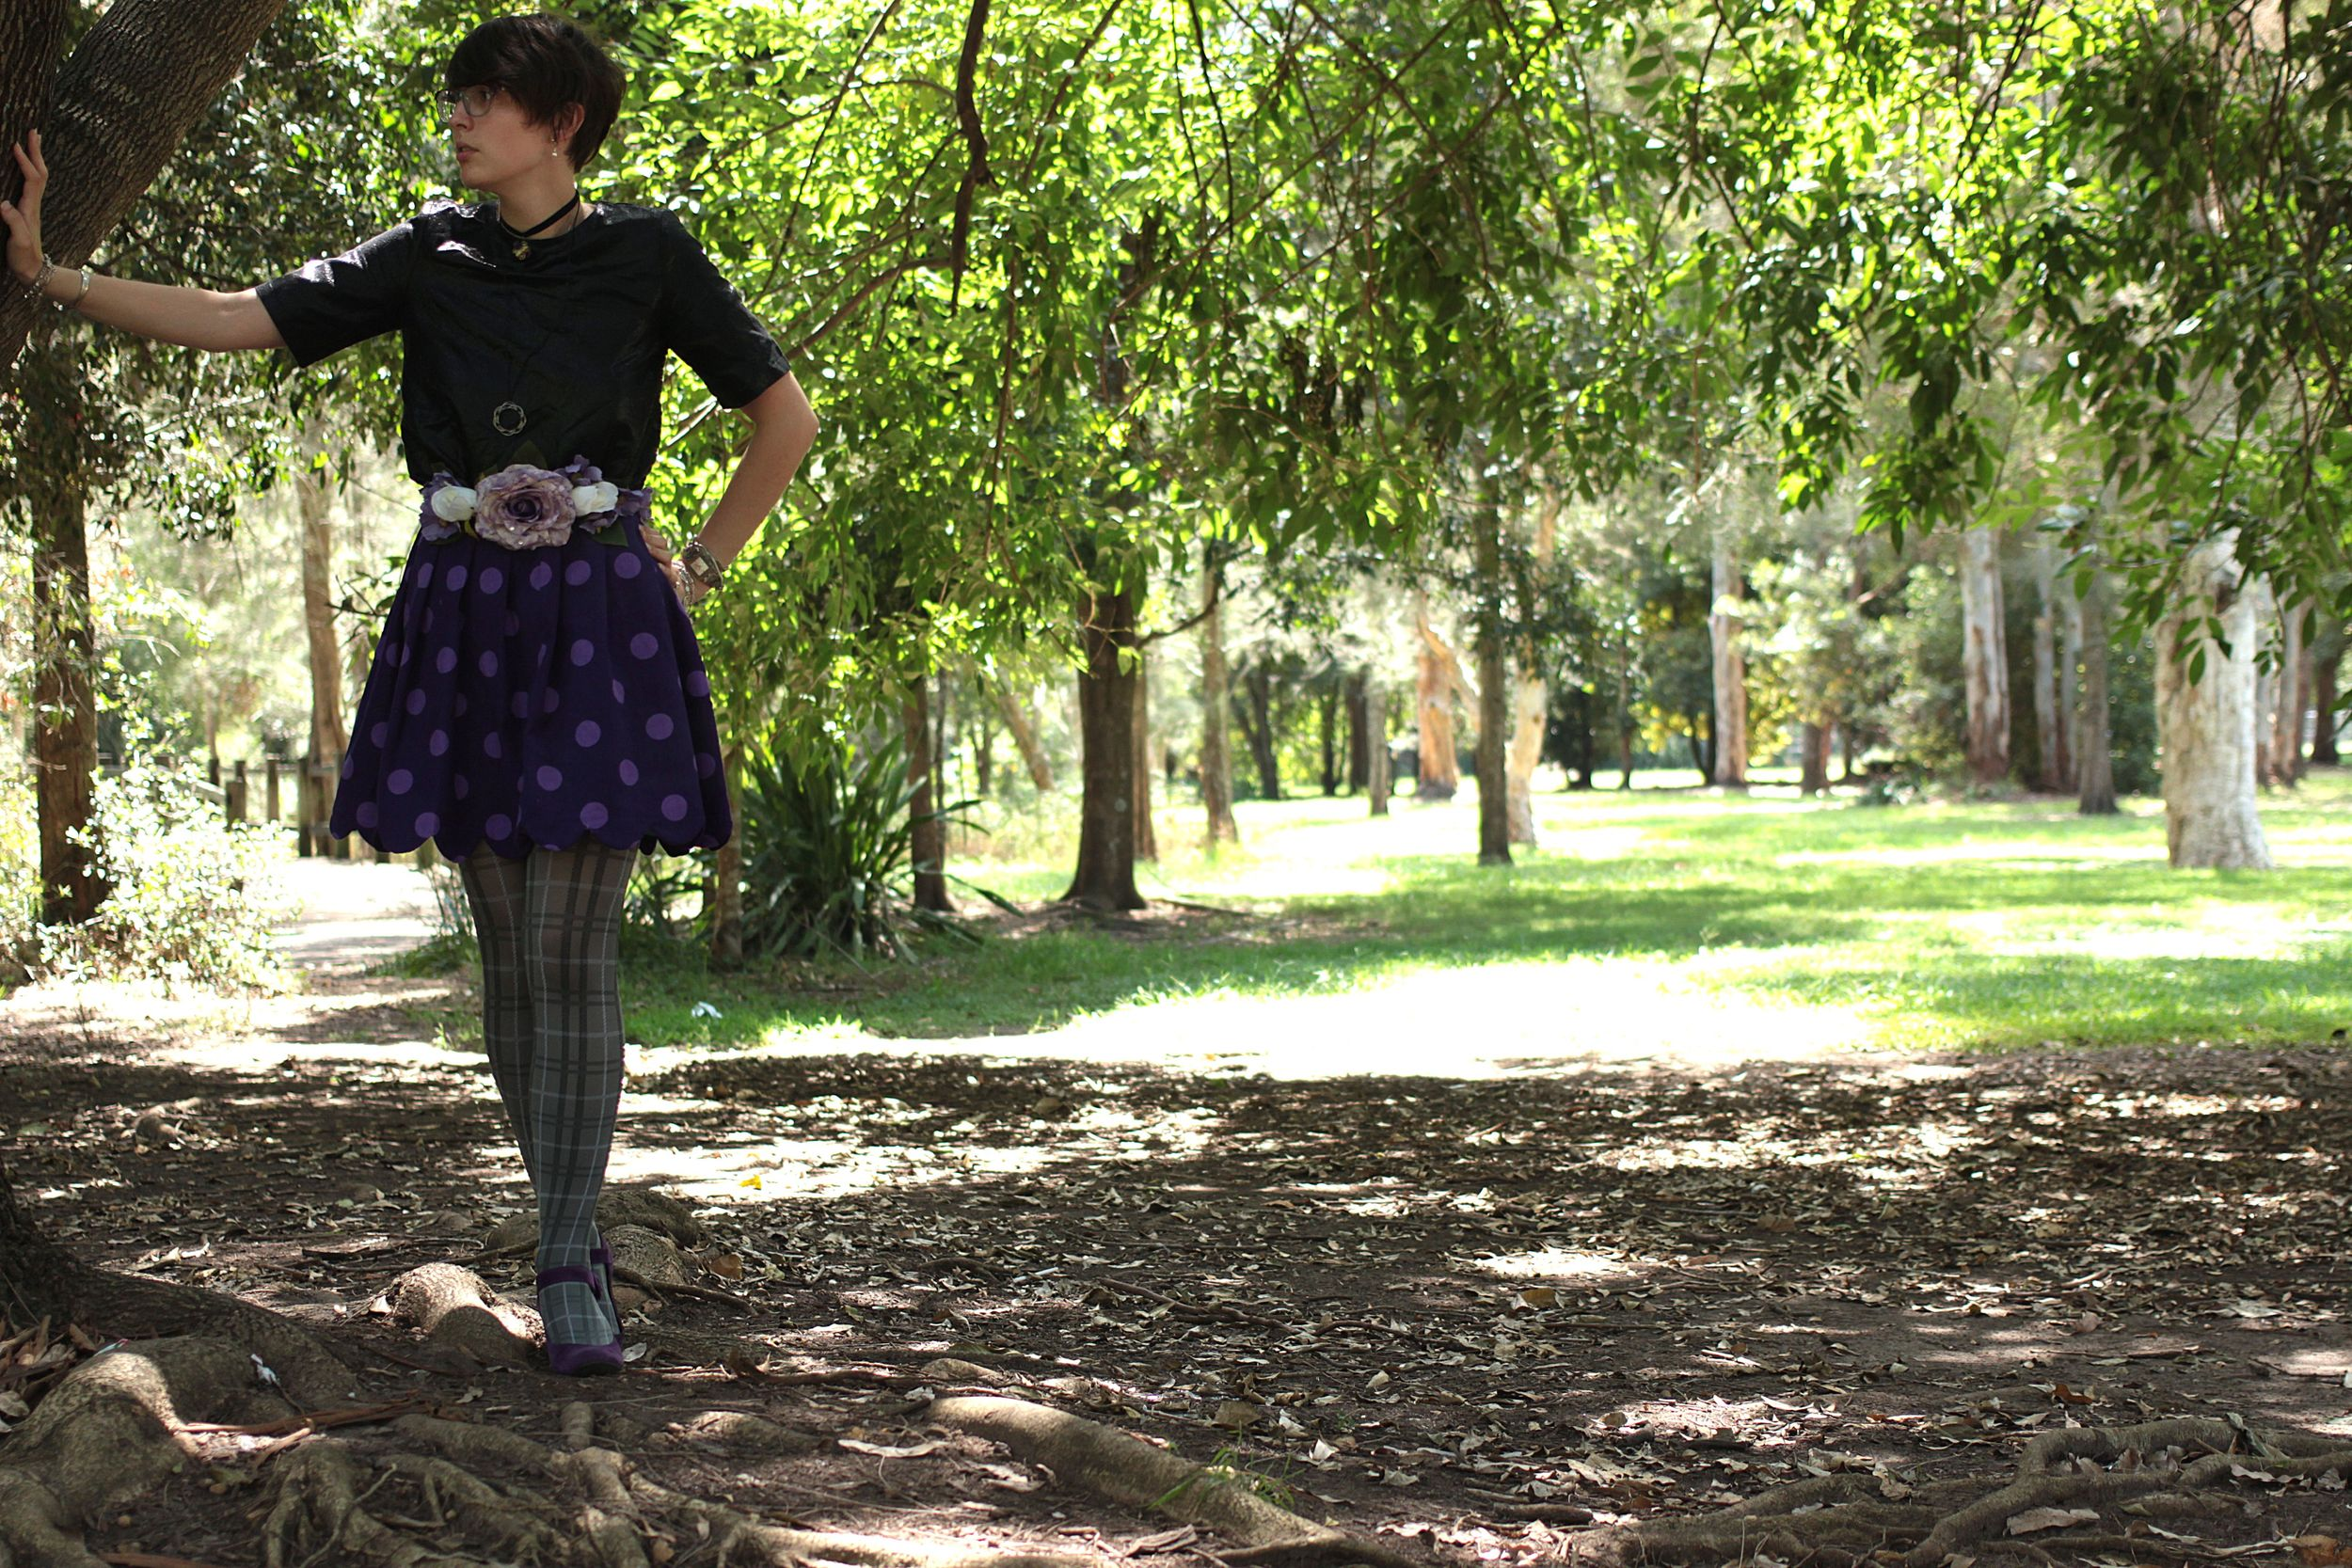 Shirt: Thrifted, Belt: Home Made, Skirt: Home Made, Tights: Myer, Shoes: Gift.